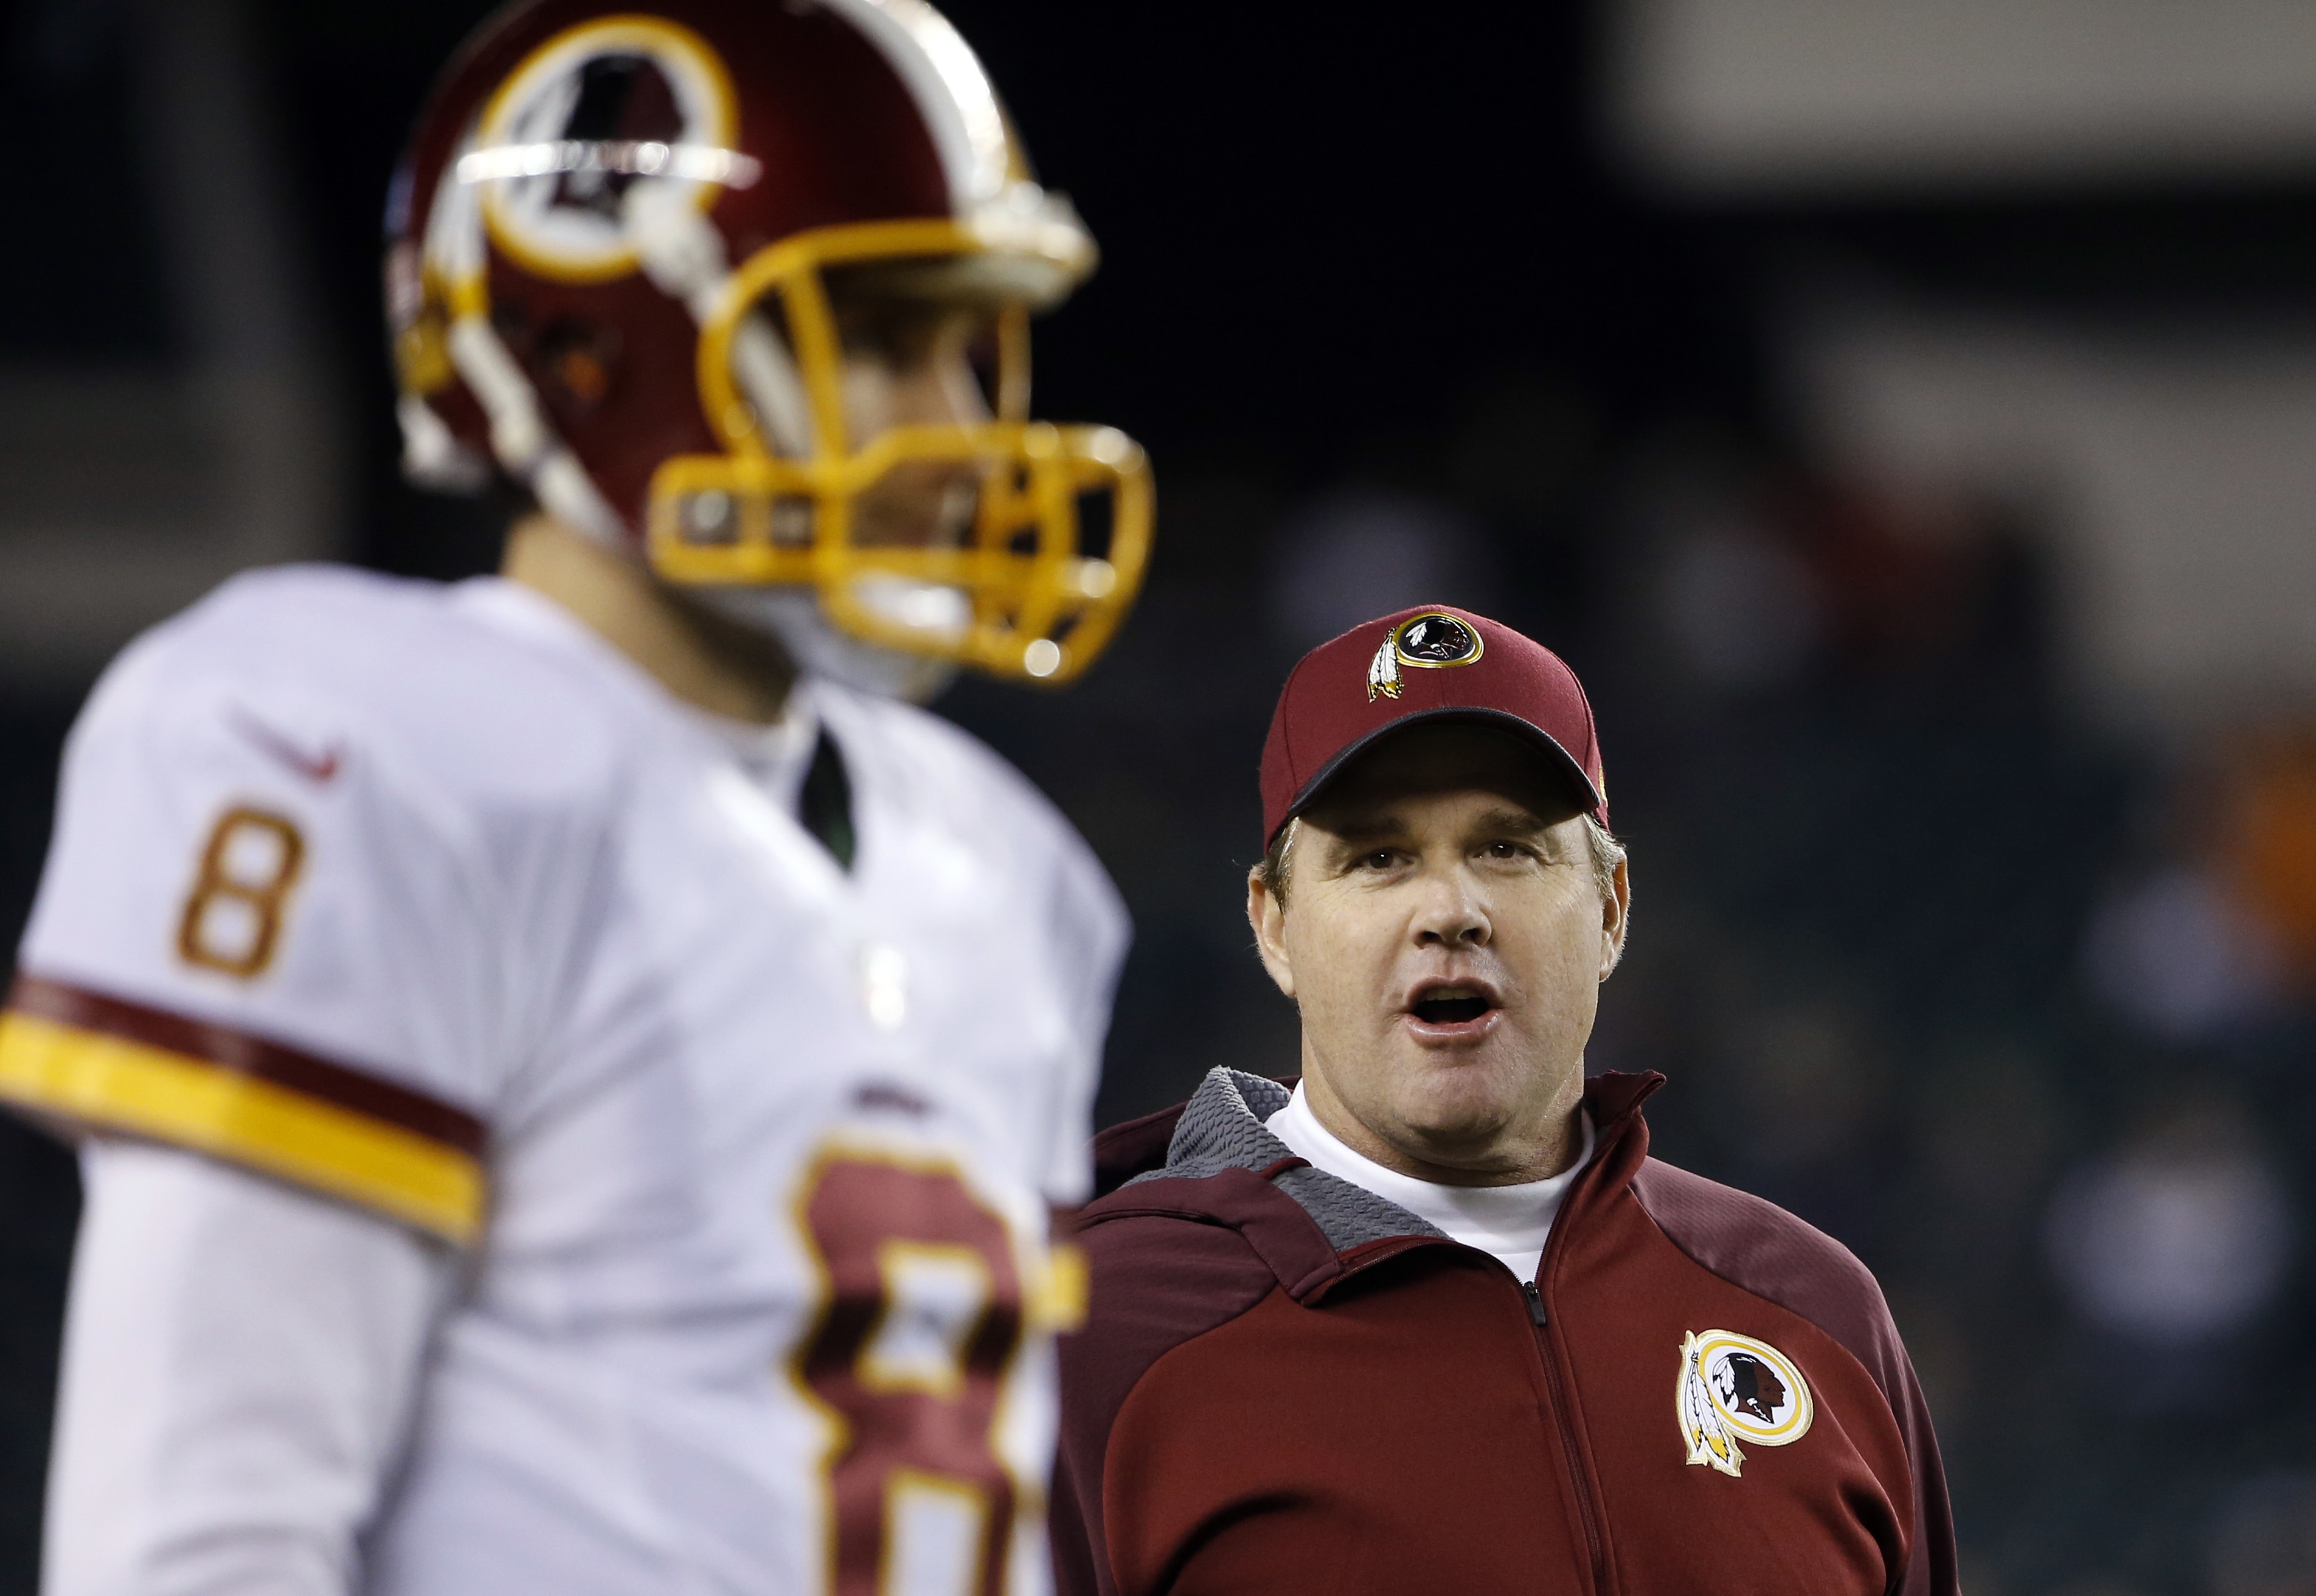 FILE - In this Dec. 26, 2015, file photo, Washington Redskins head coach Jay Gruden, right, watches quarterback Kirk Cousins warm up before an NFL football game against the Philadelphia Eagles in Philadelphia. Gruden is excited to face his former team in